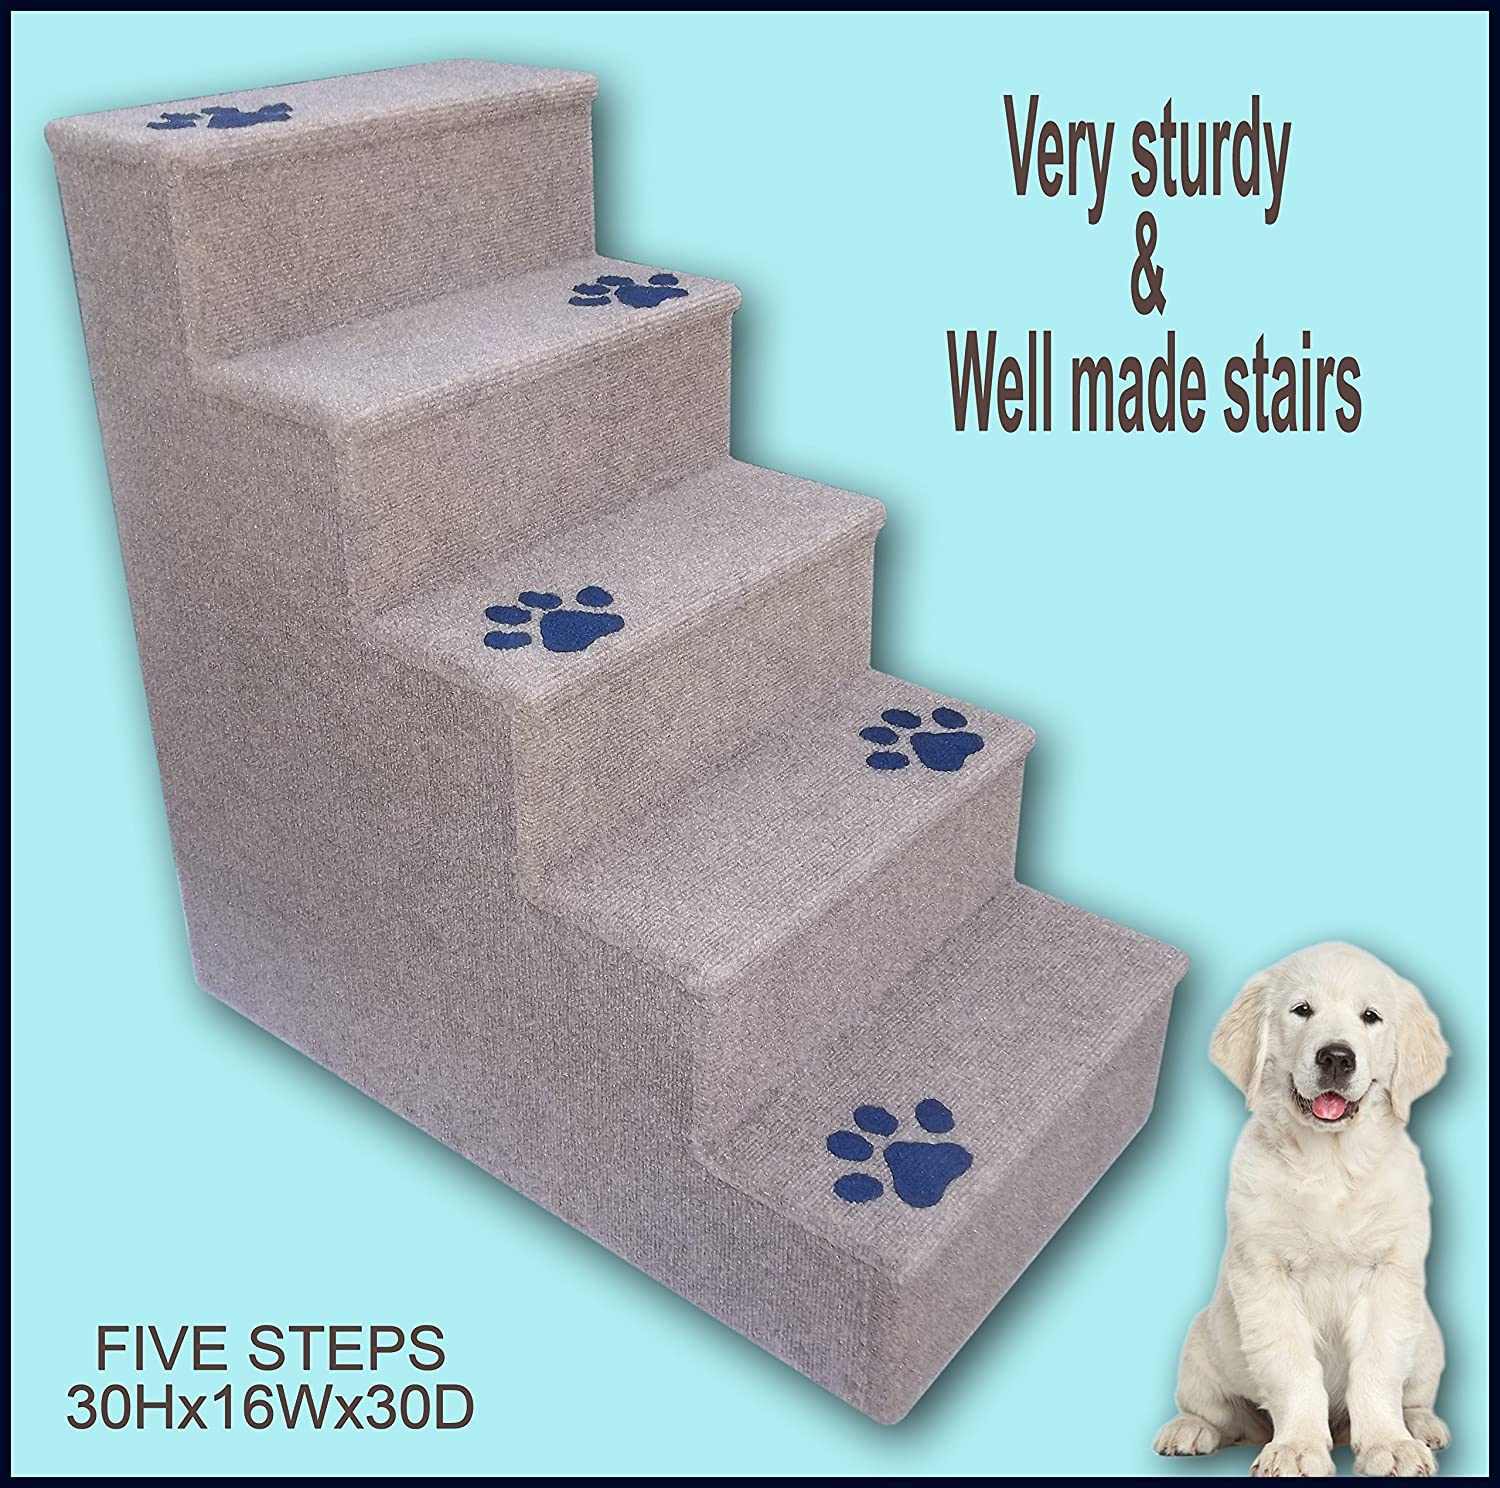 Navarce Dog Steps. Doggy Stairs.Pet Furniture, Dogs Furniture. 30 inches Tall Wooden Dog Steps, pet Stairs